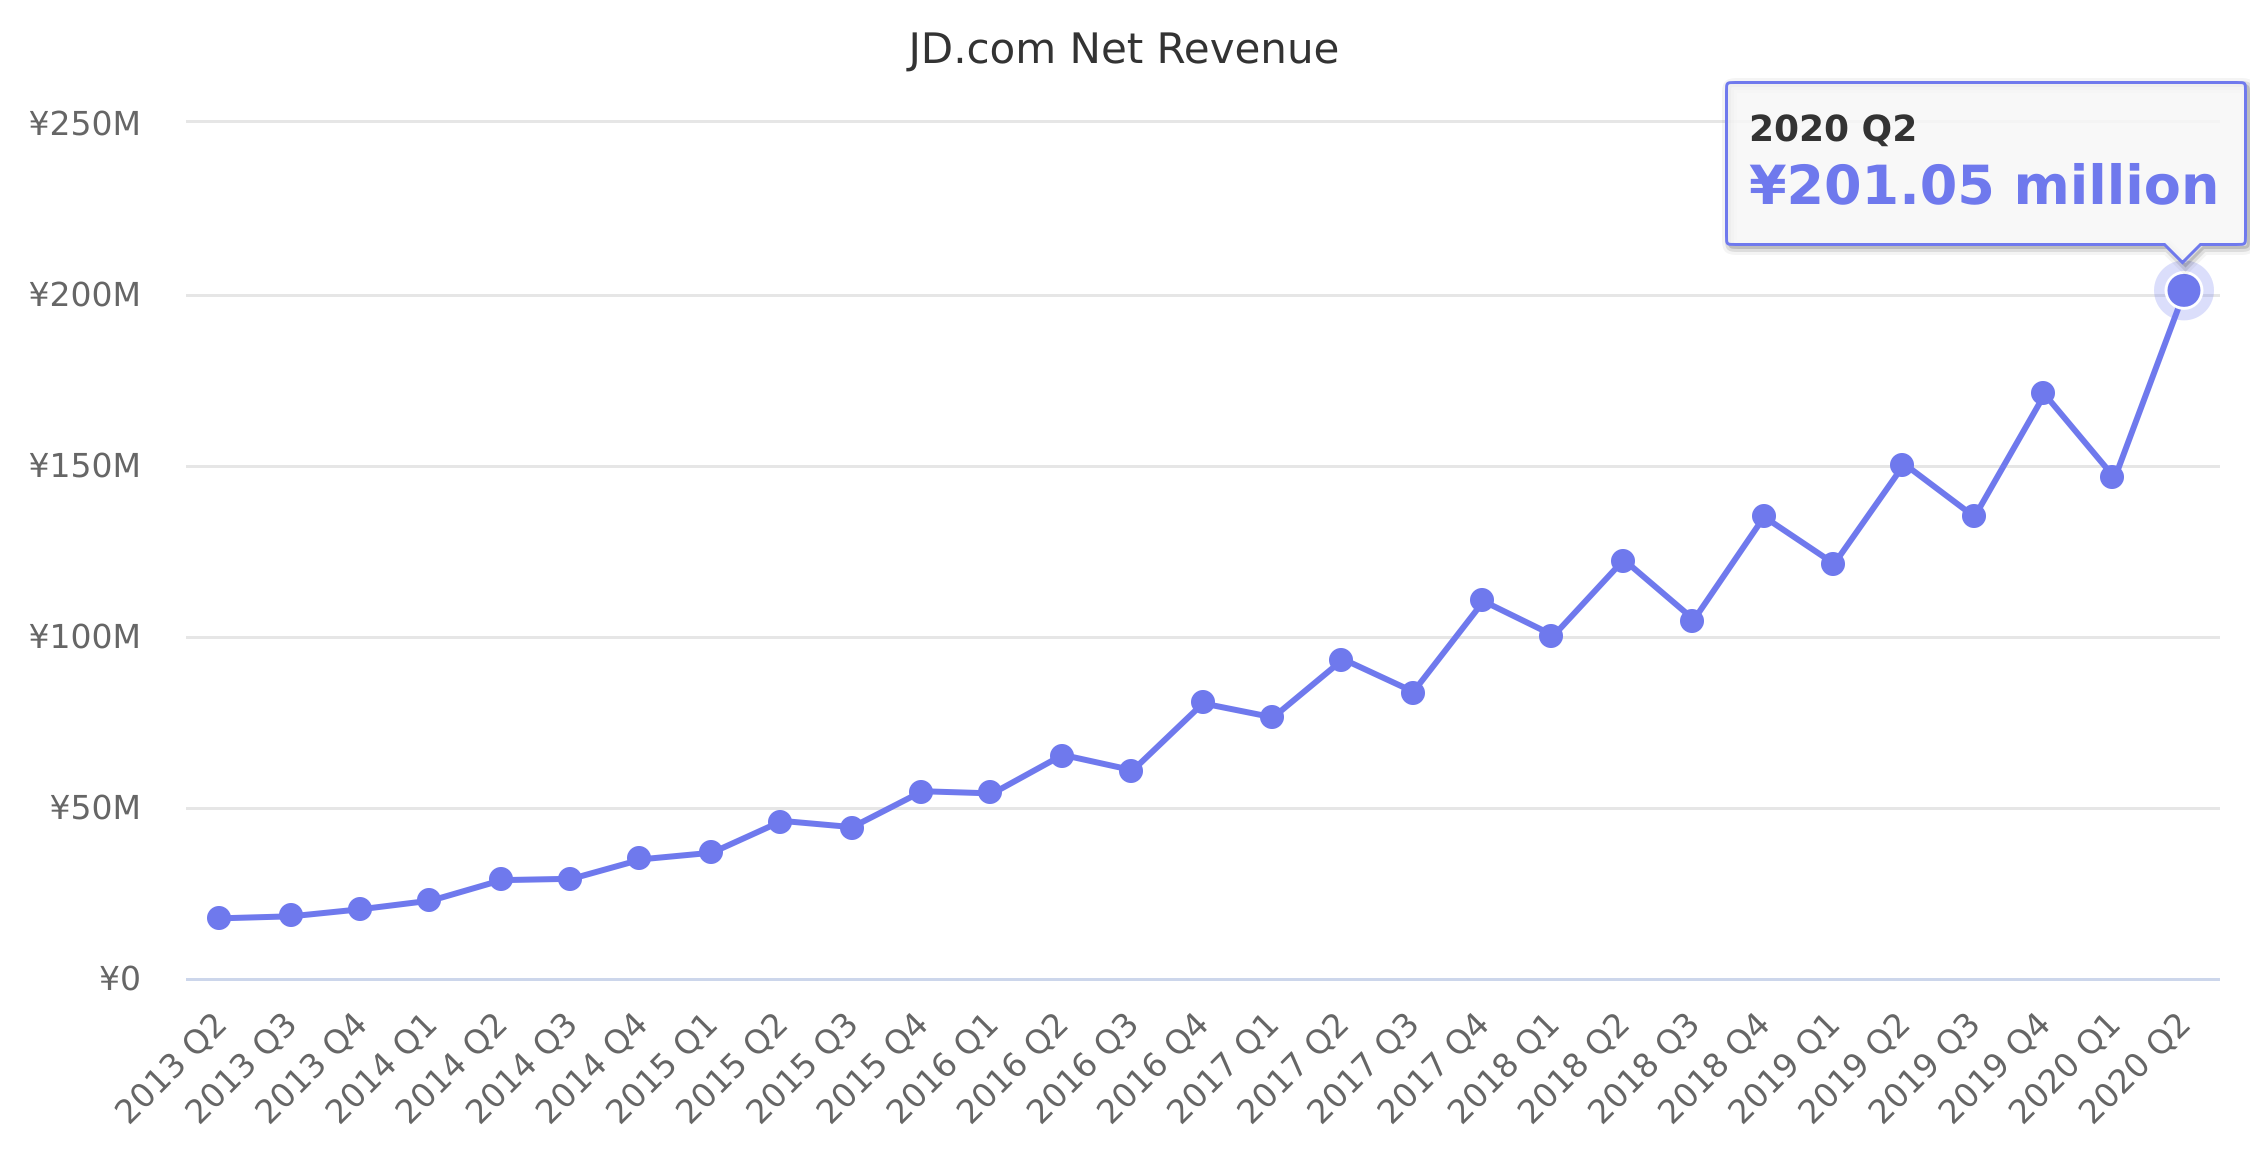 JD.com Net Revenue